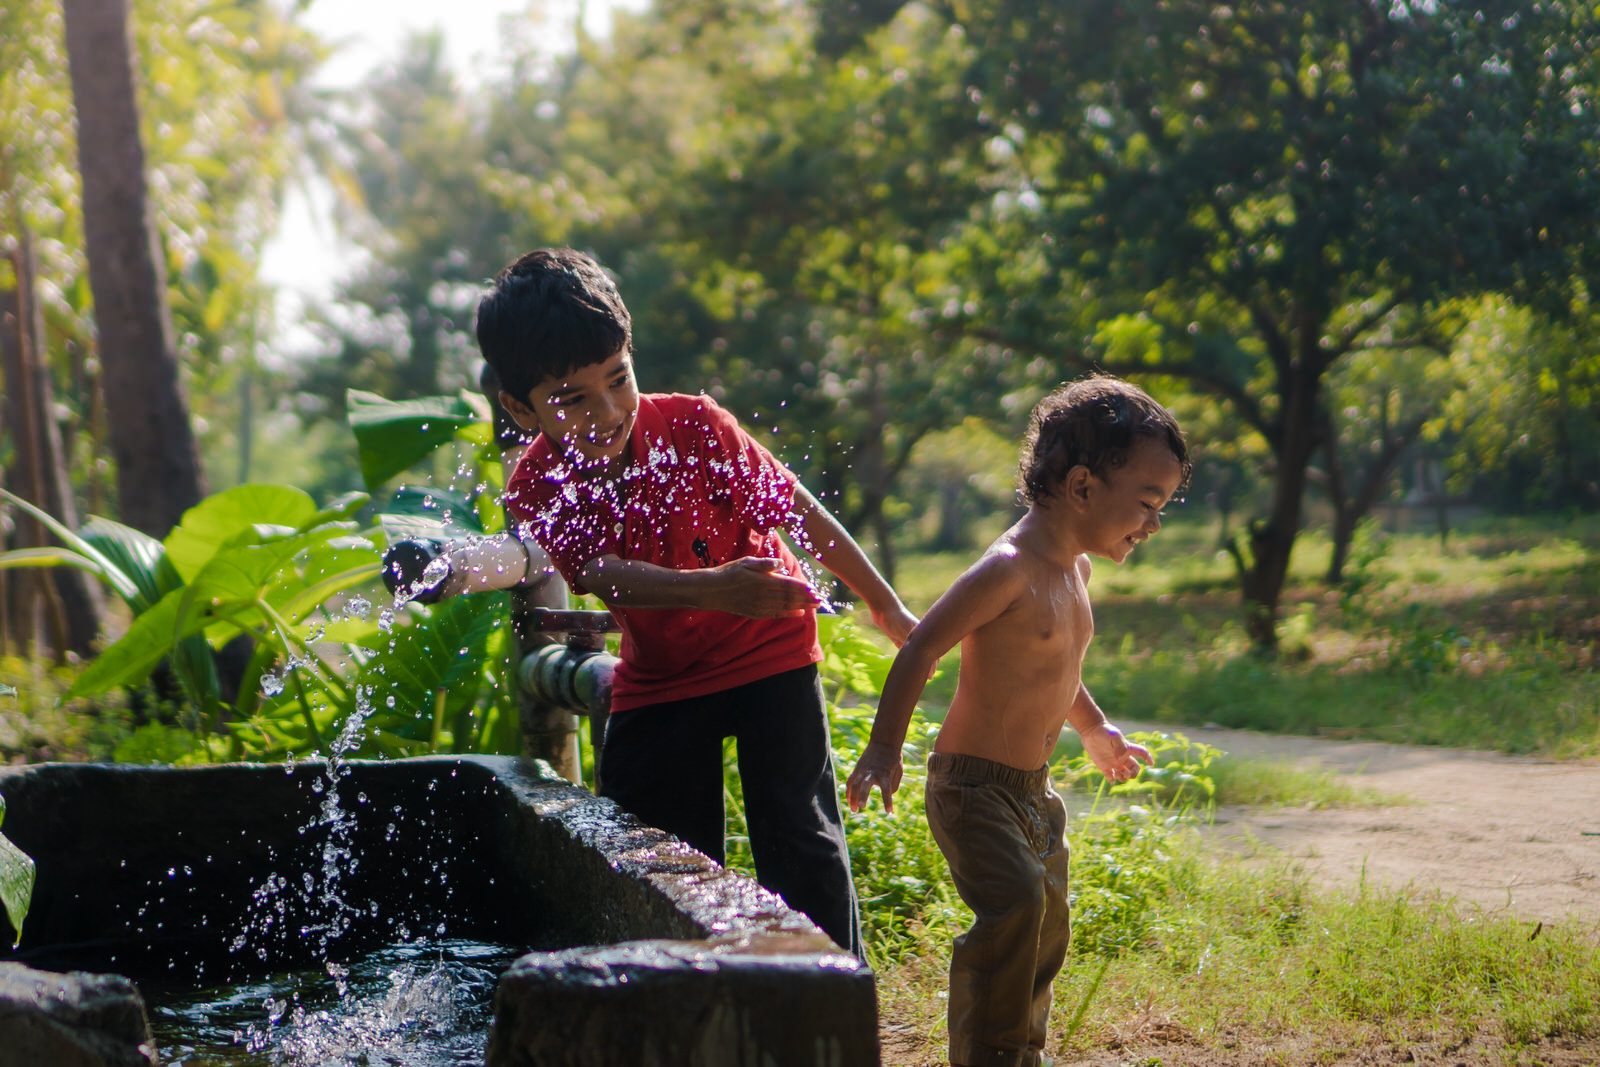 23122017-Boys-Playing-Water-Tank-349.jpg